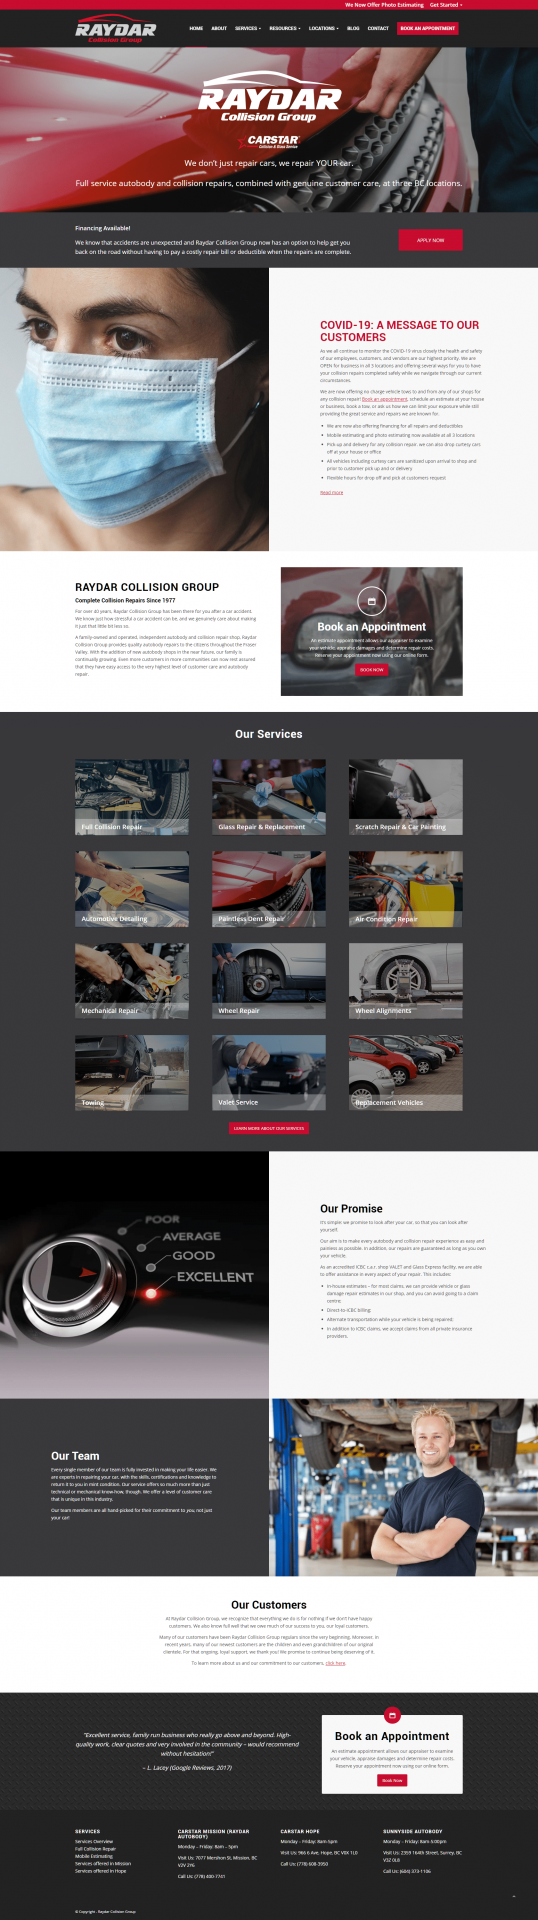 Raydar Collision website design homepage layout example